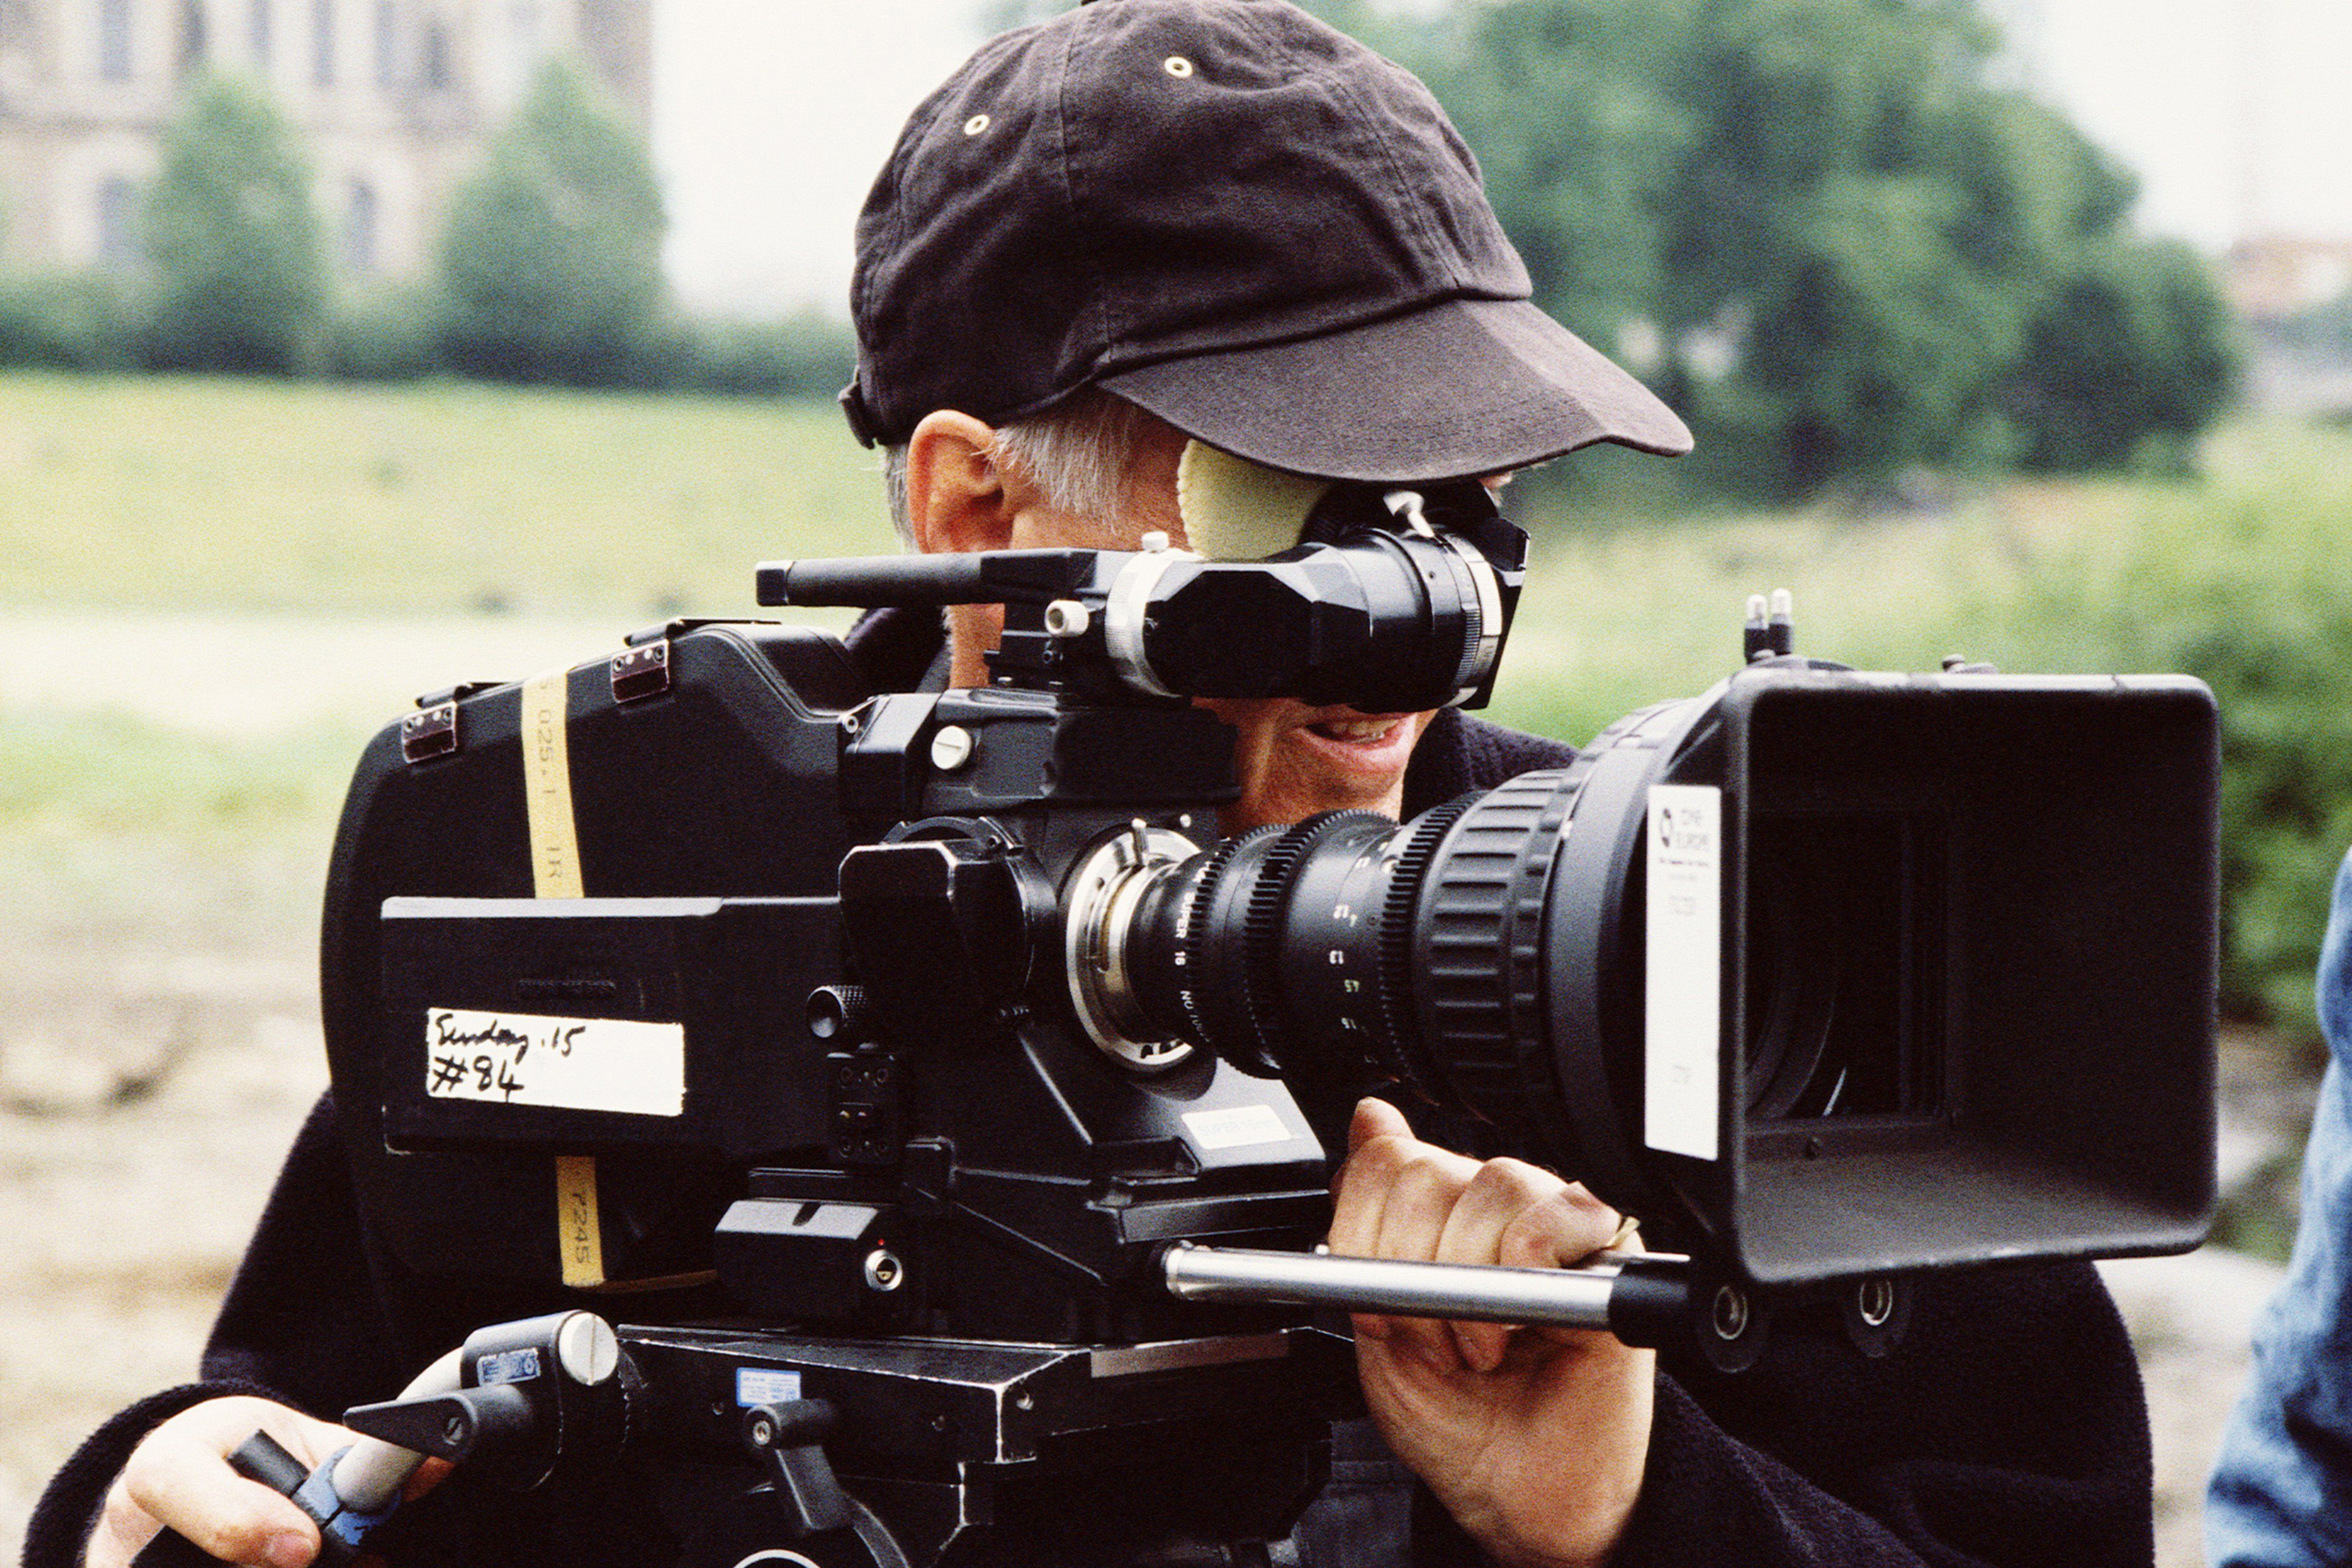 how to get a job as a camera operater